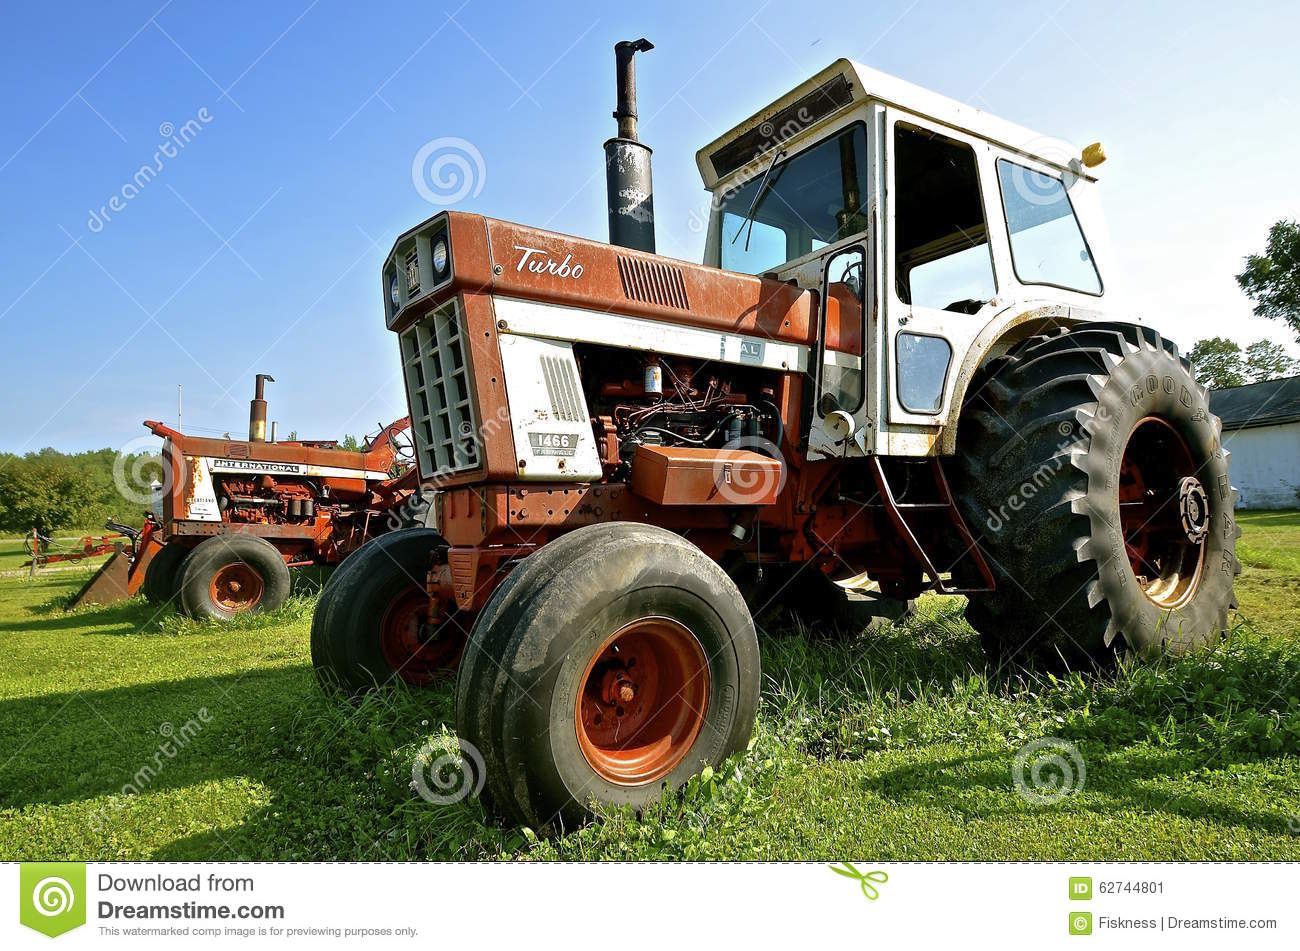 Tractor Brand Names : Turbo farmall tractor editorial photo image of